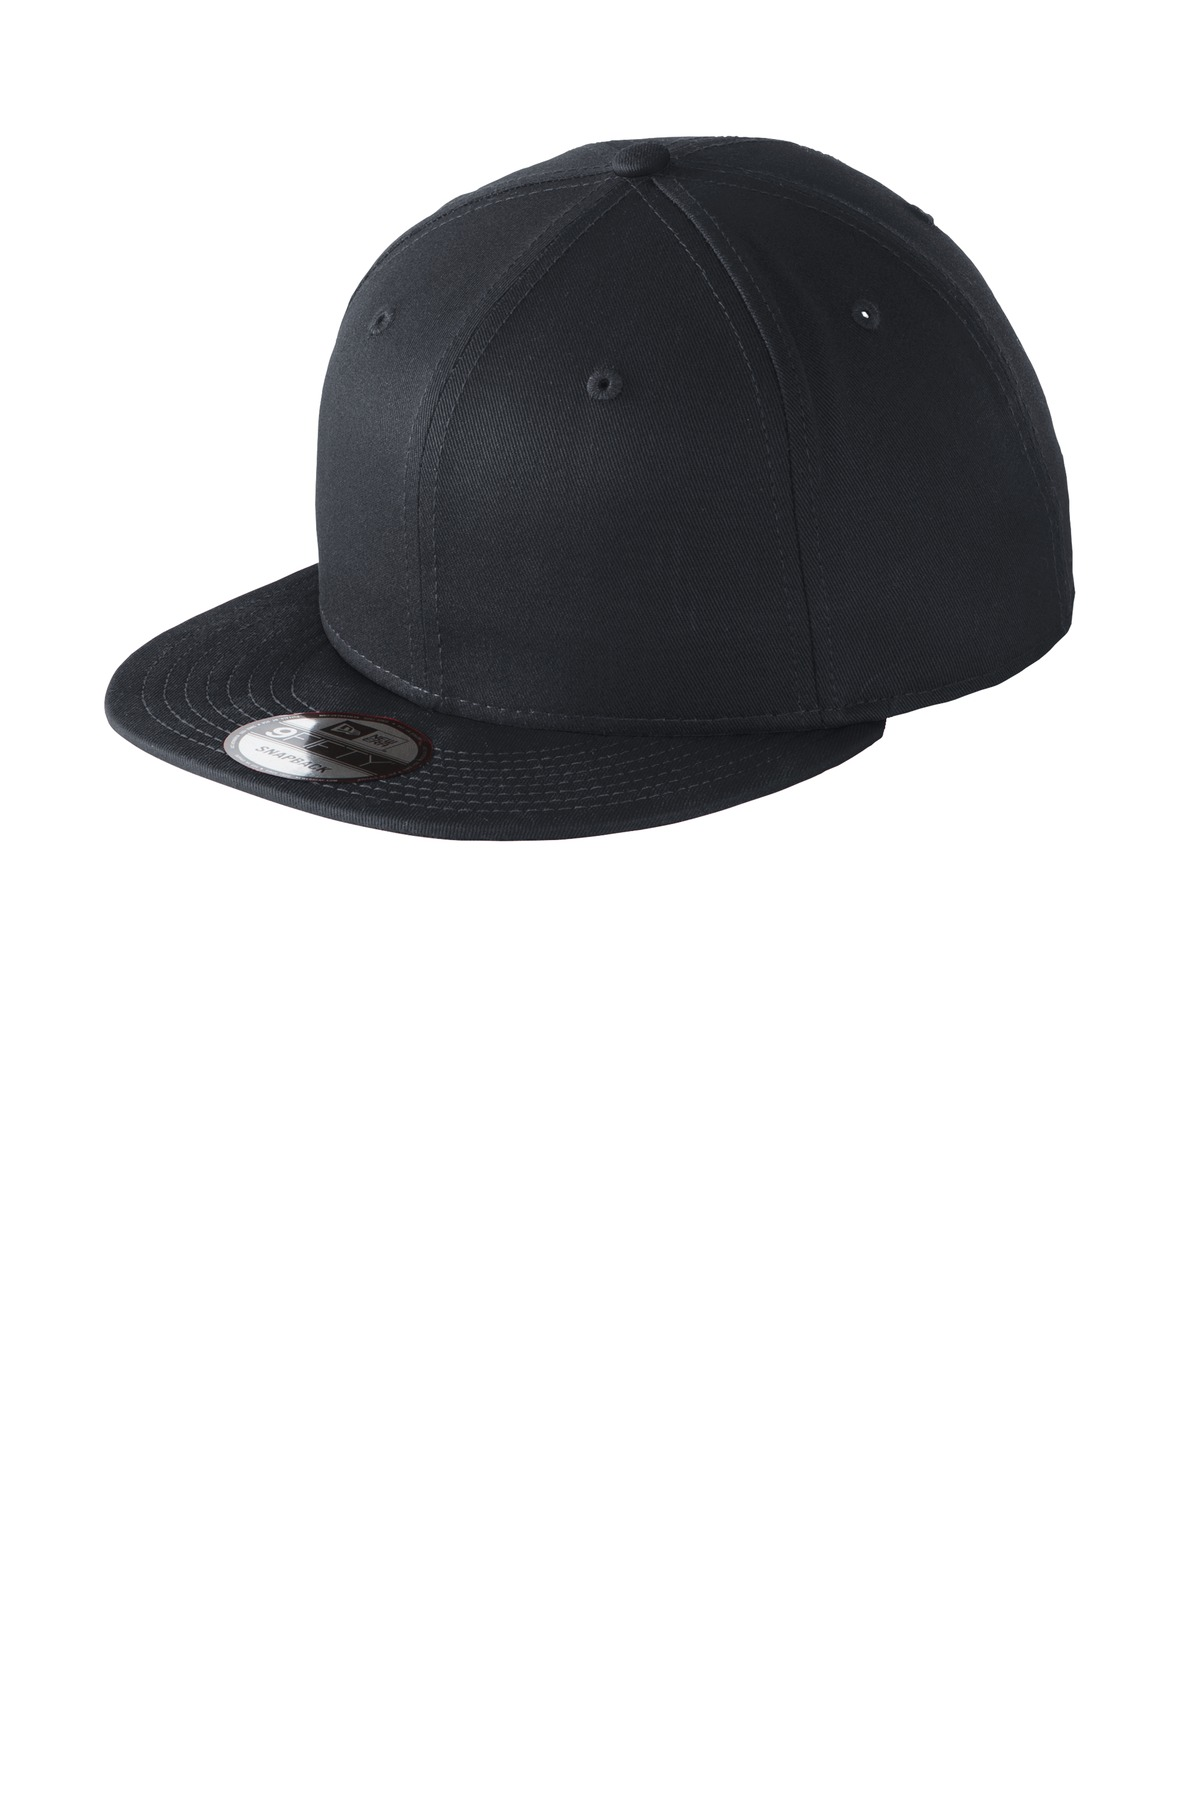 New Era ®  - Flat Bill Snapback Cap. NE400 - Dark Navy